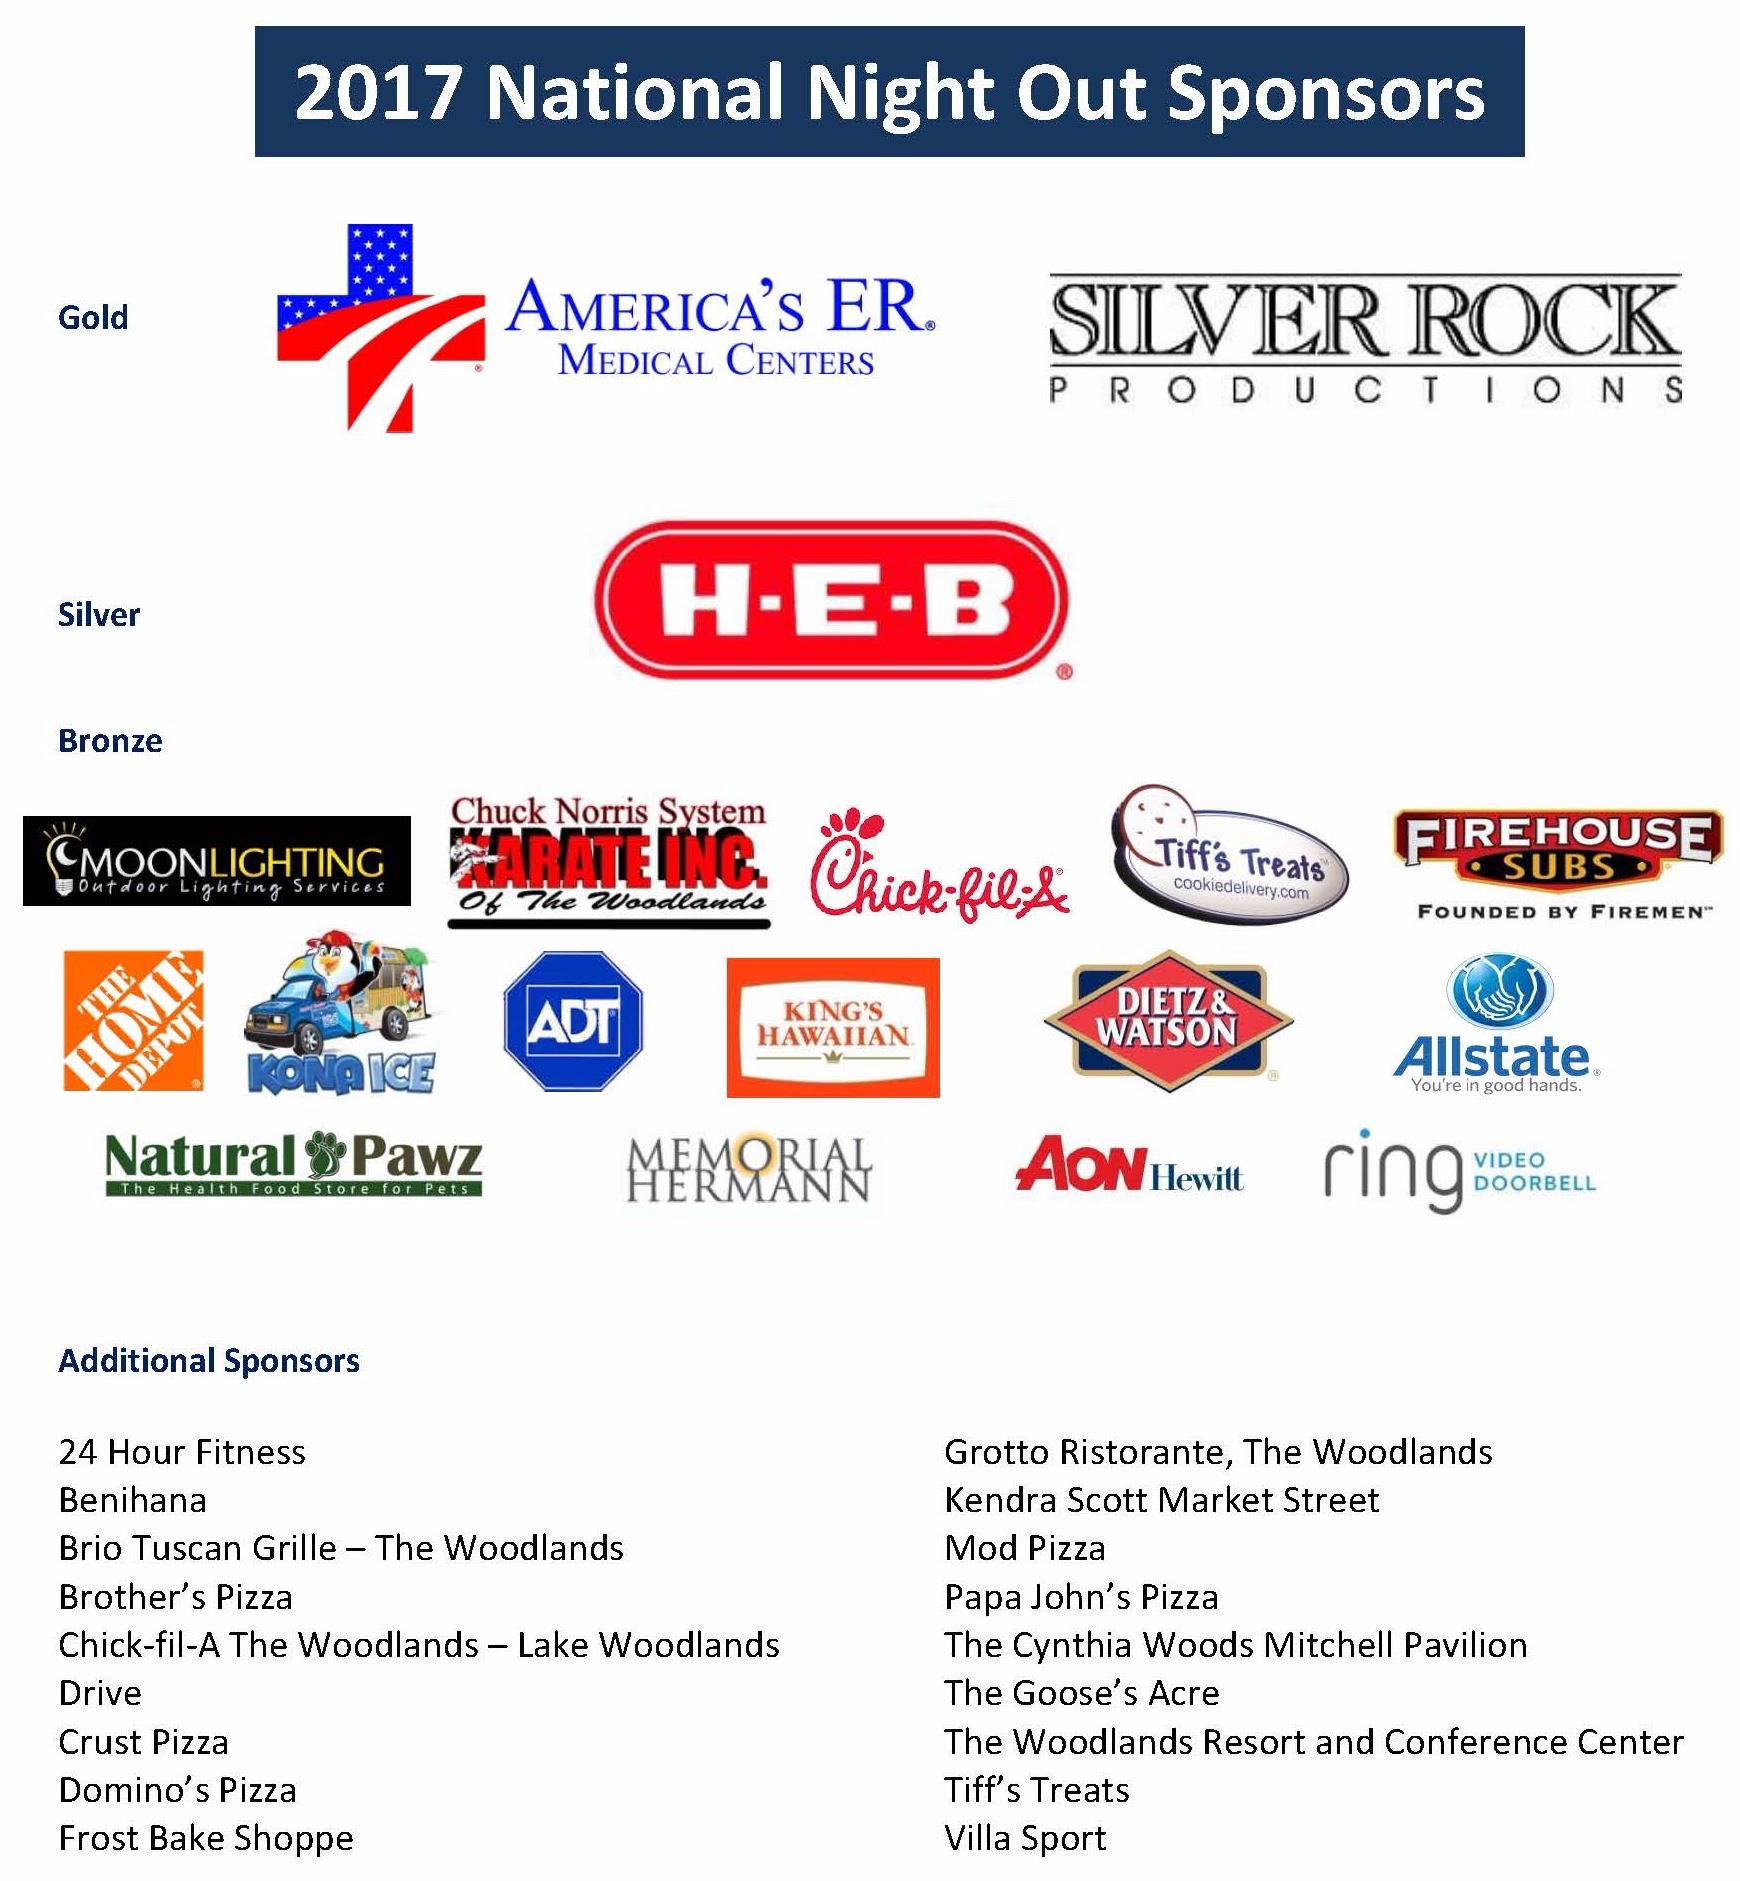 2017 National Night Out Sponsors